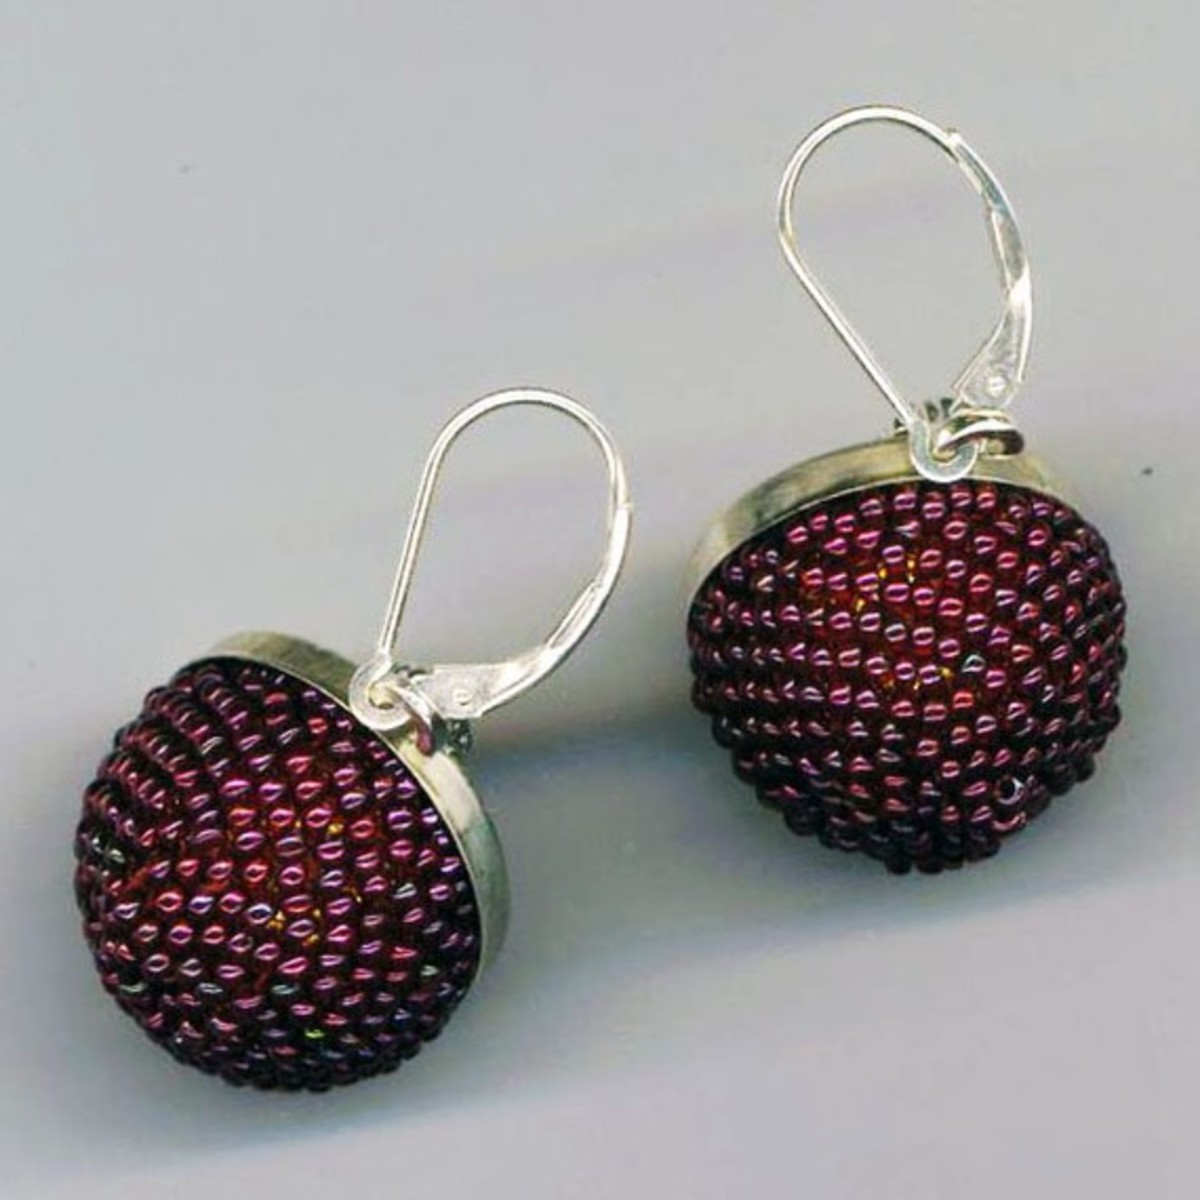 Beaded beads make wonderful earrings.  There are a number of different possibilities for the earring wires.